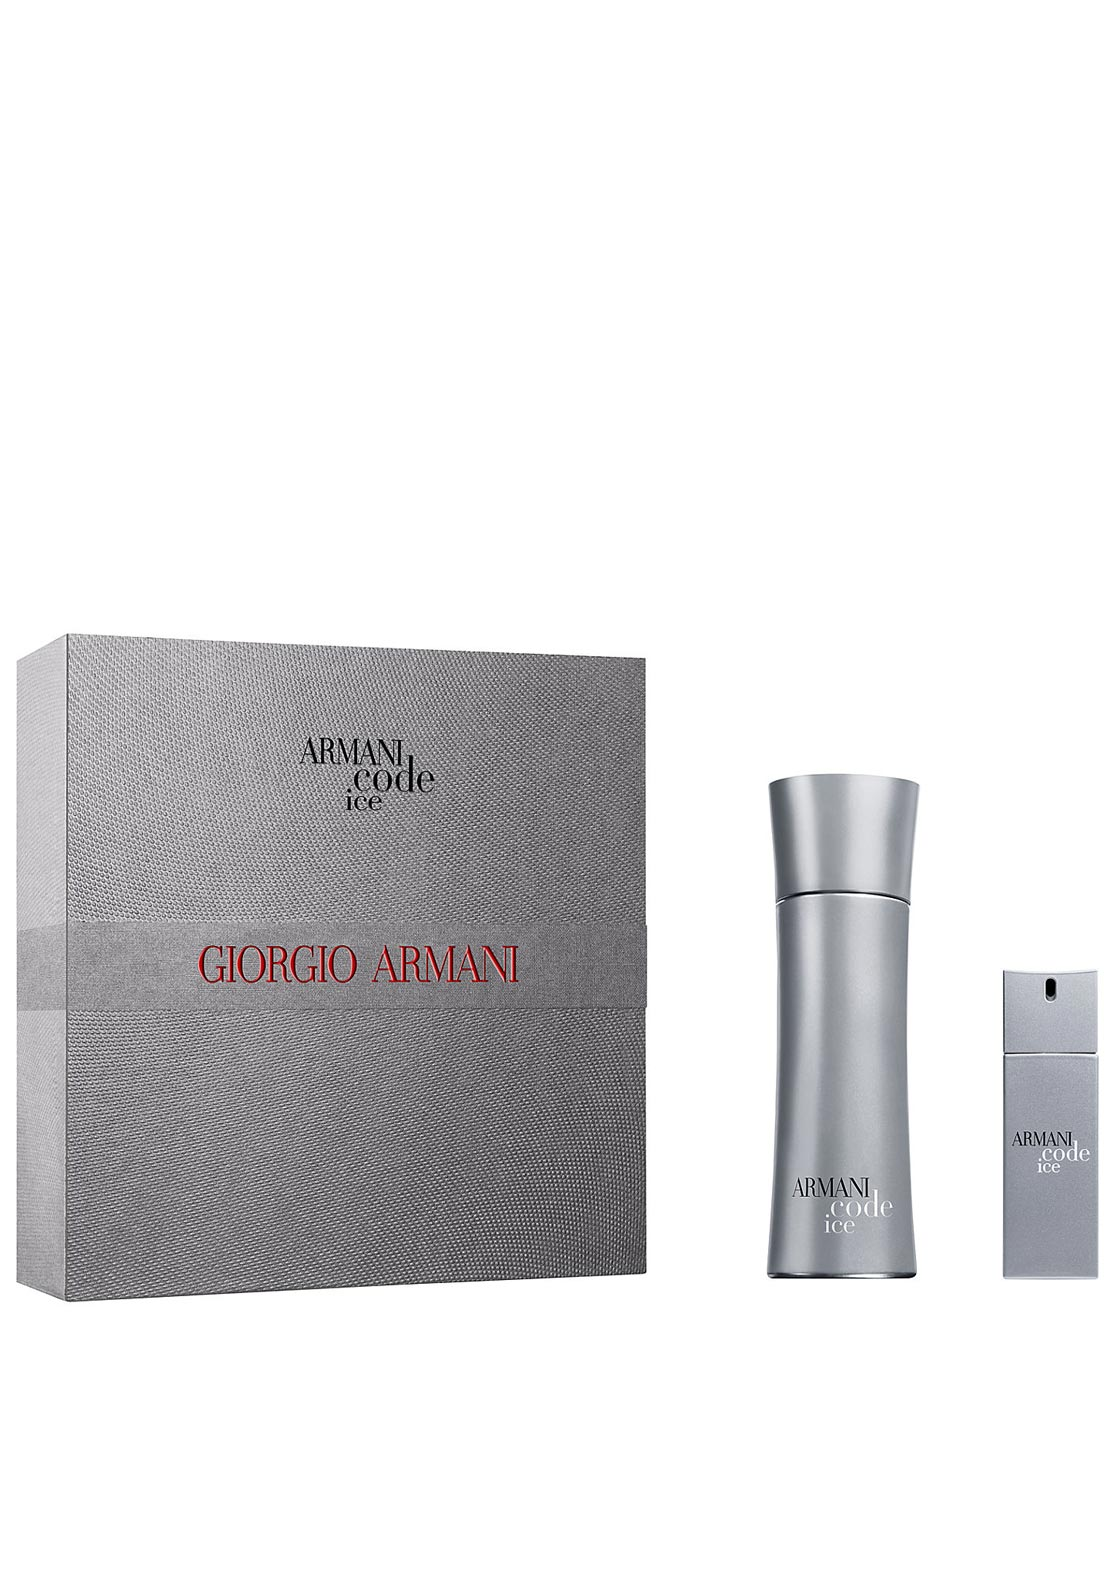 Giorgio Armani Eau de Toilette Armani Code Ice for Men Gift Set, 75ml